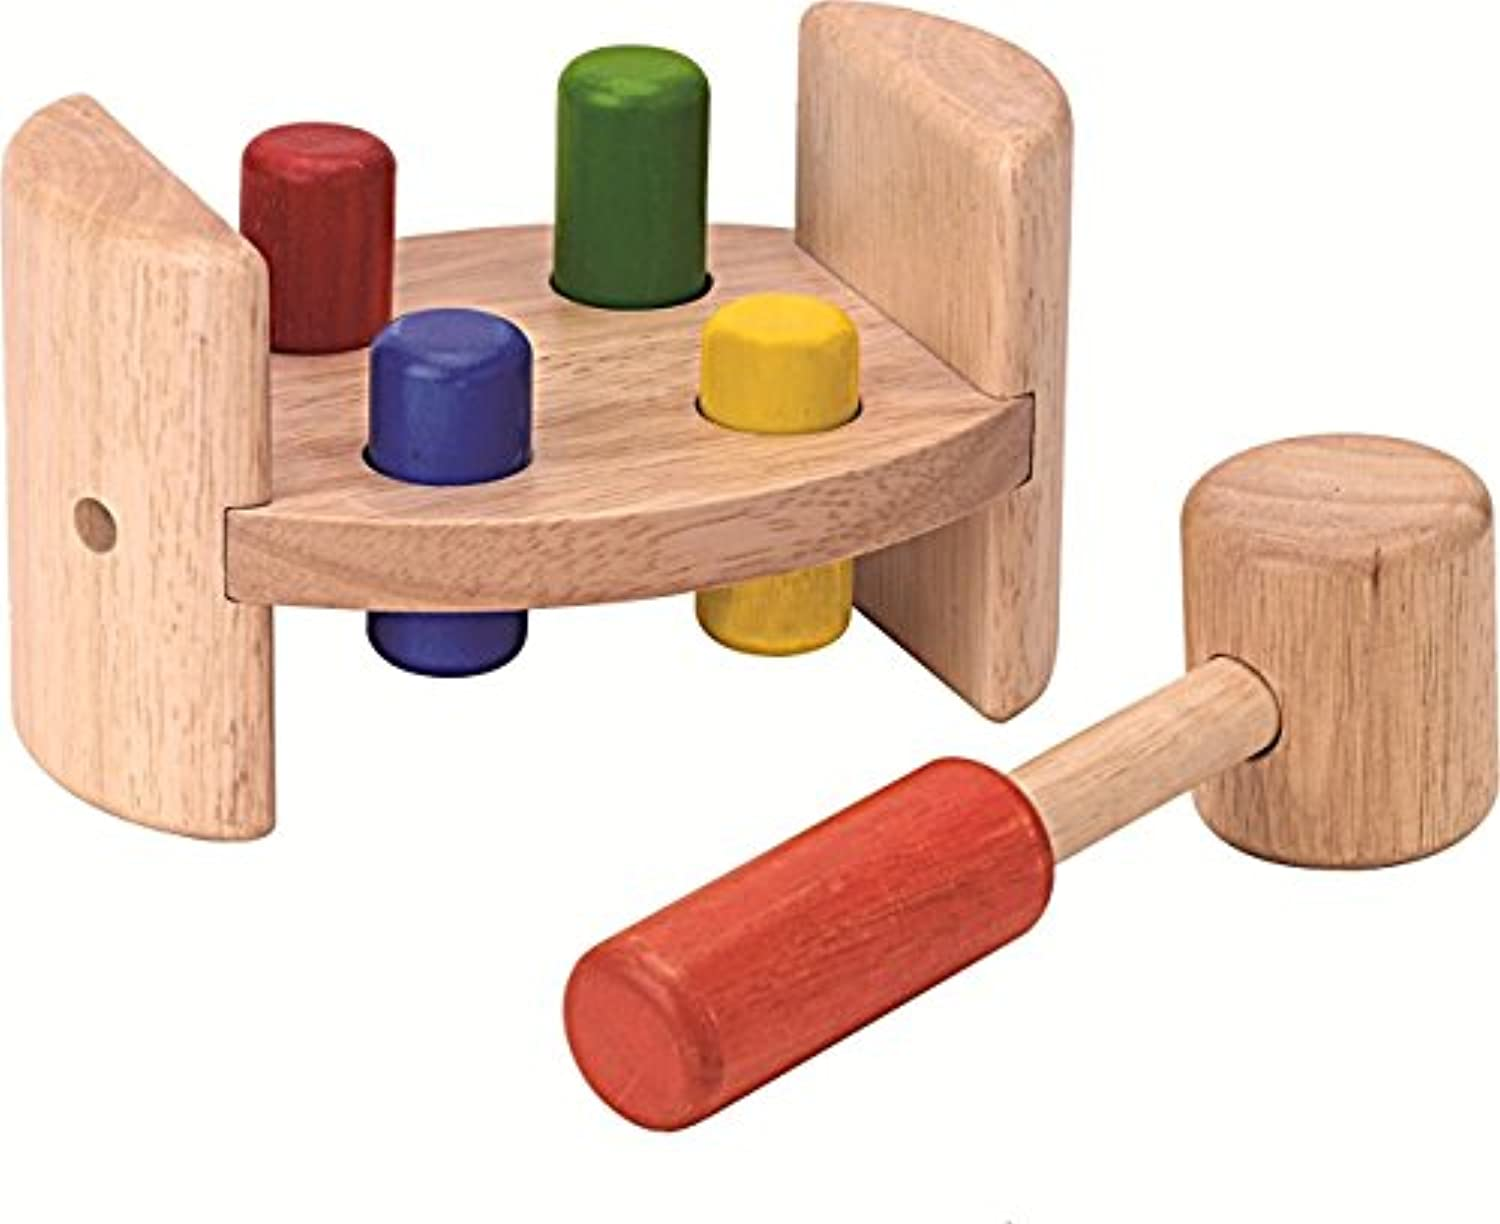 Hammer and Roll toys